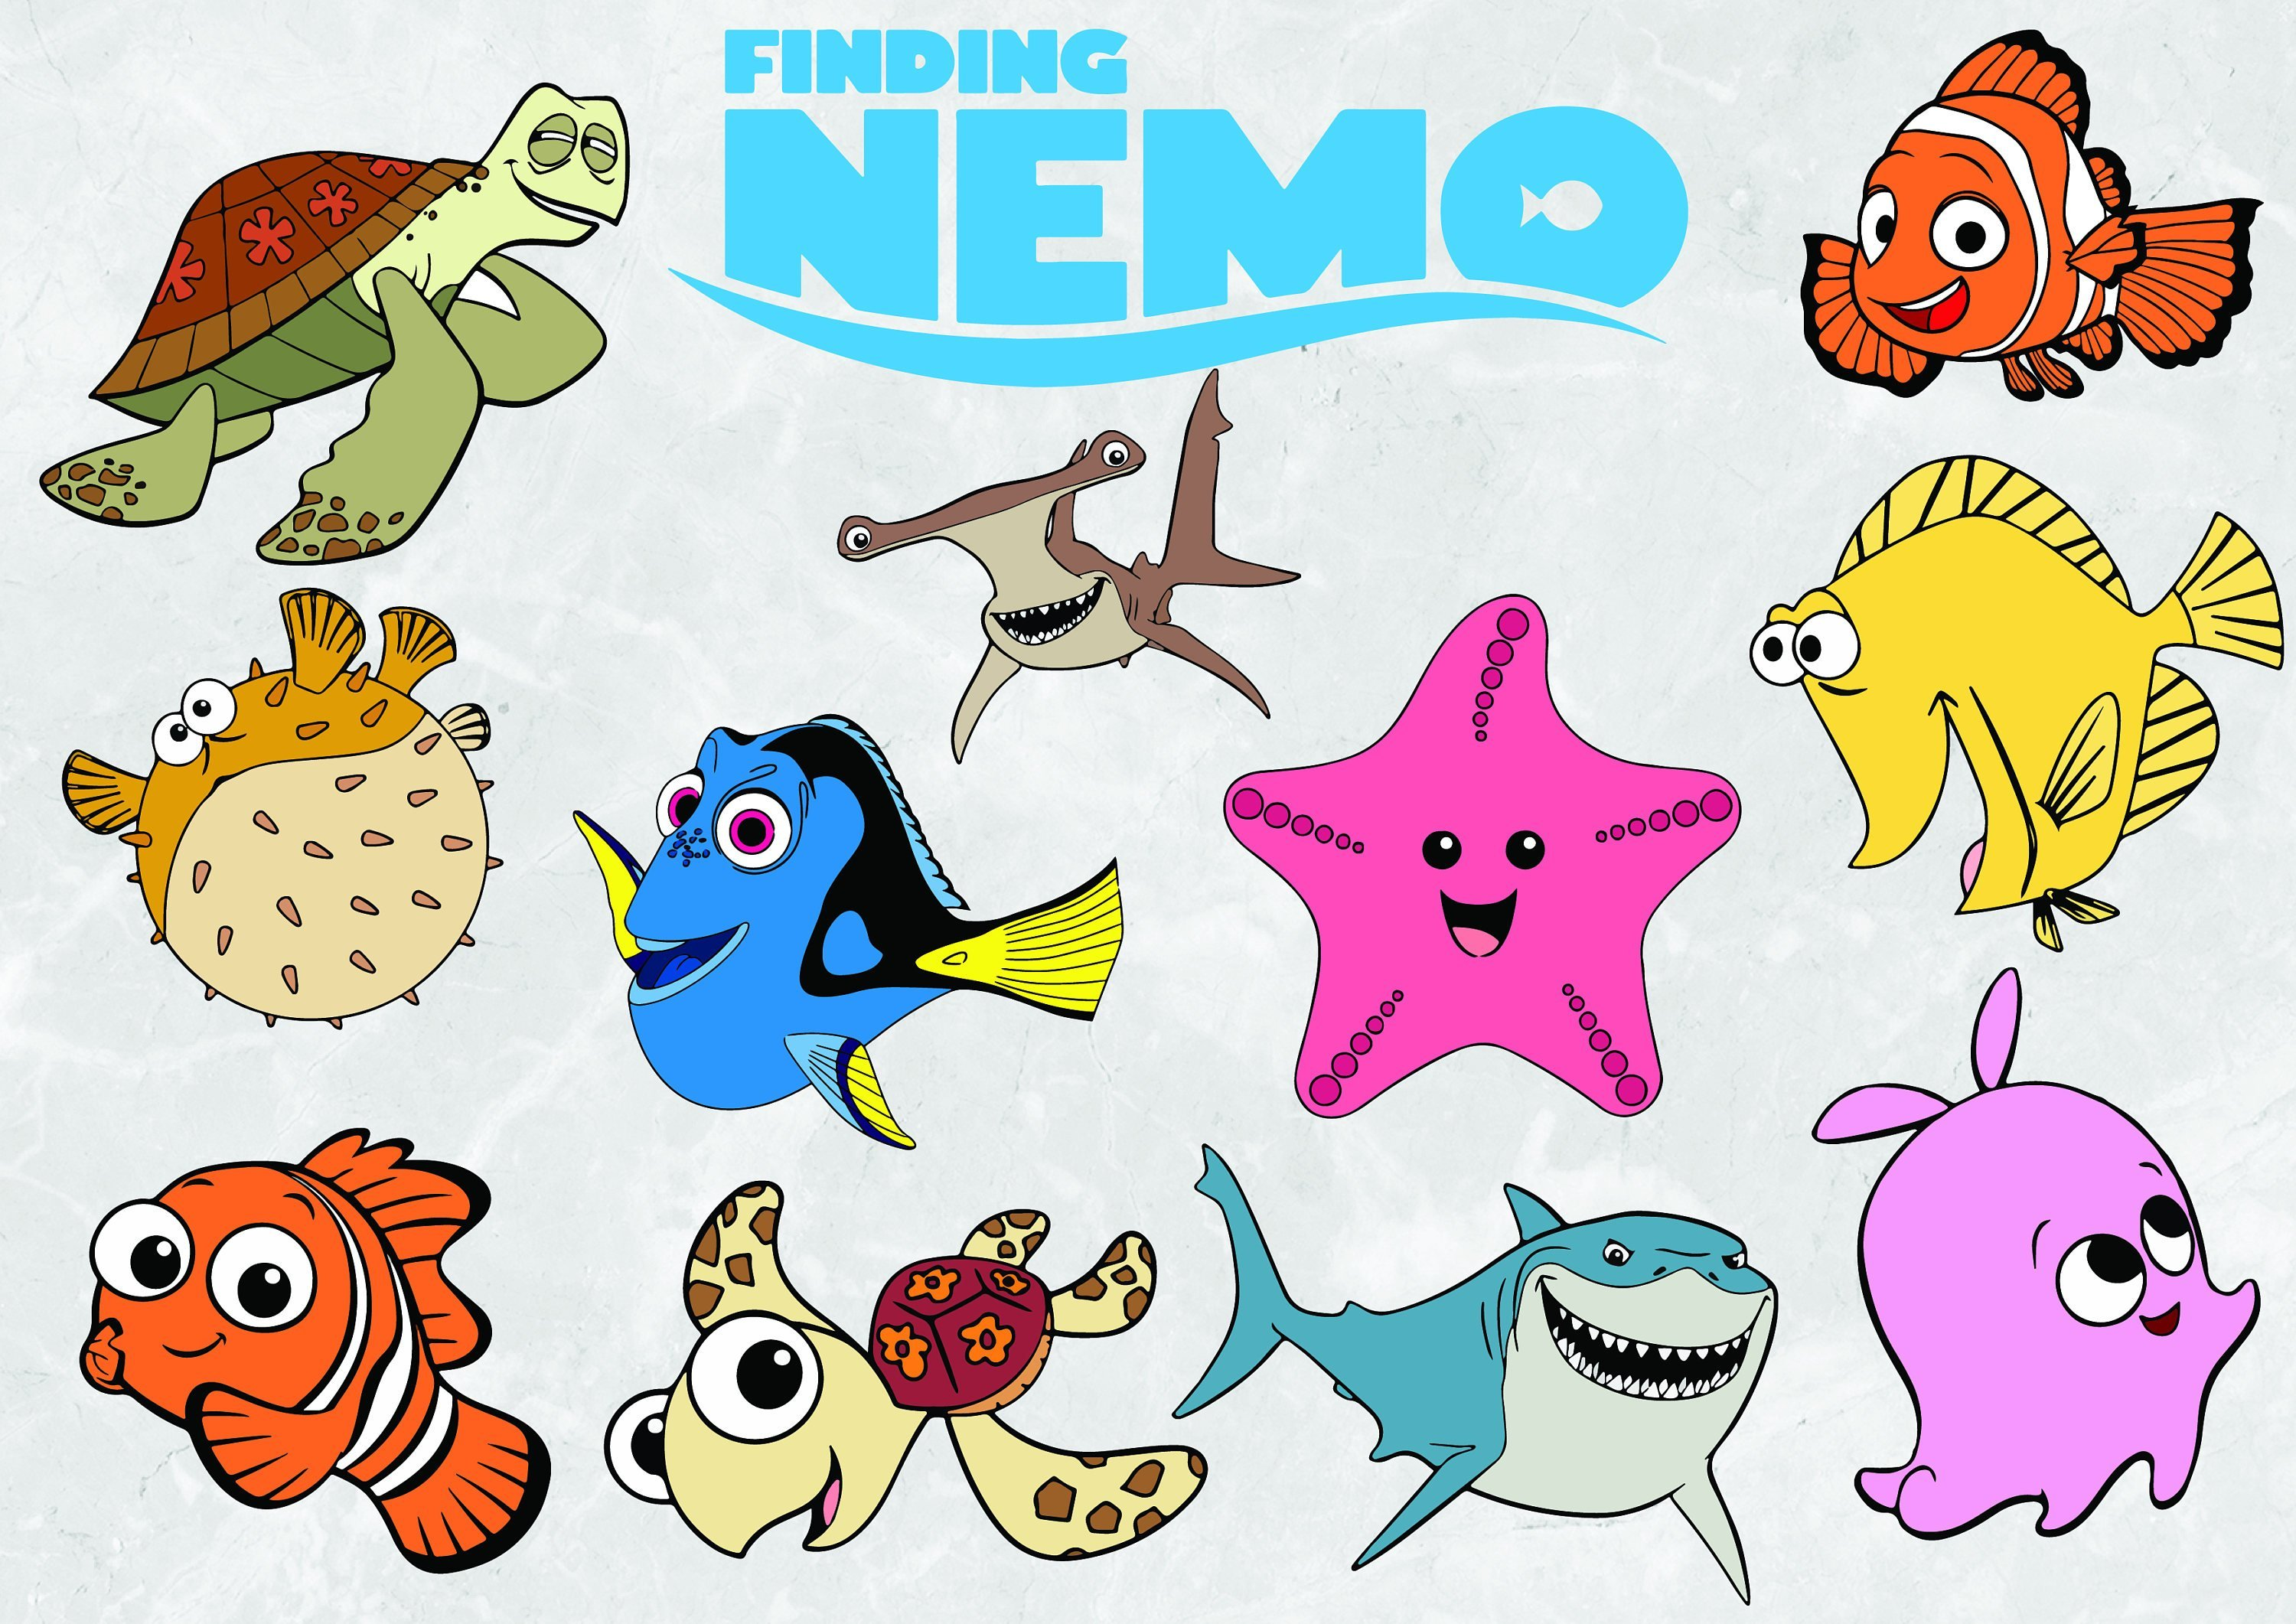 Download Free png Finding nemo clipart 4 » Clipart Portal.